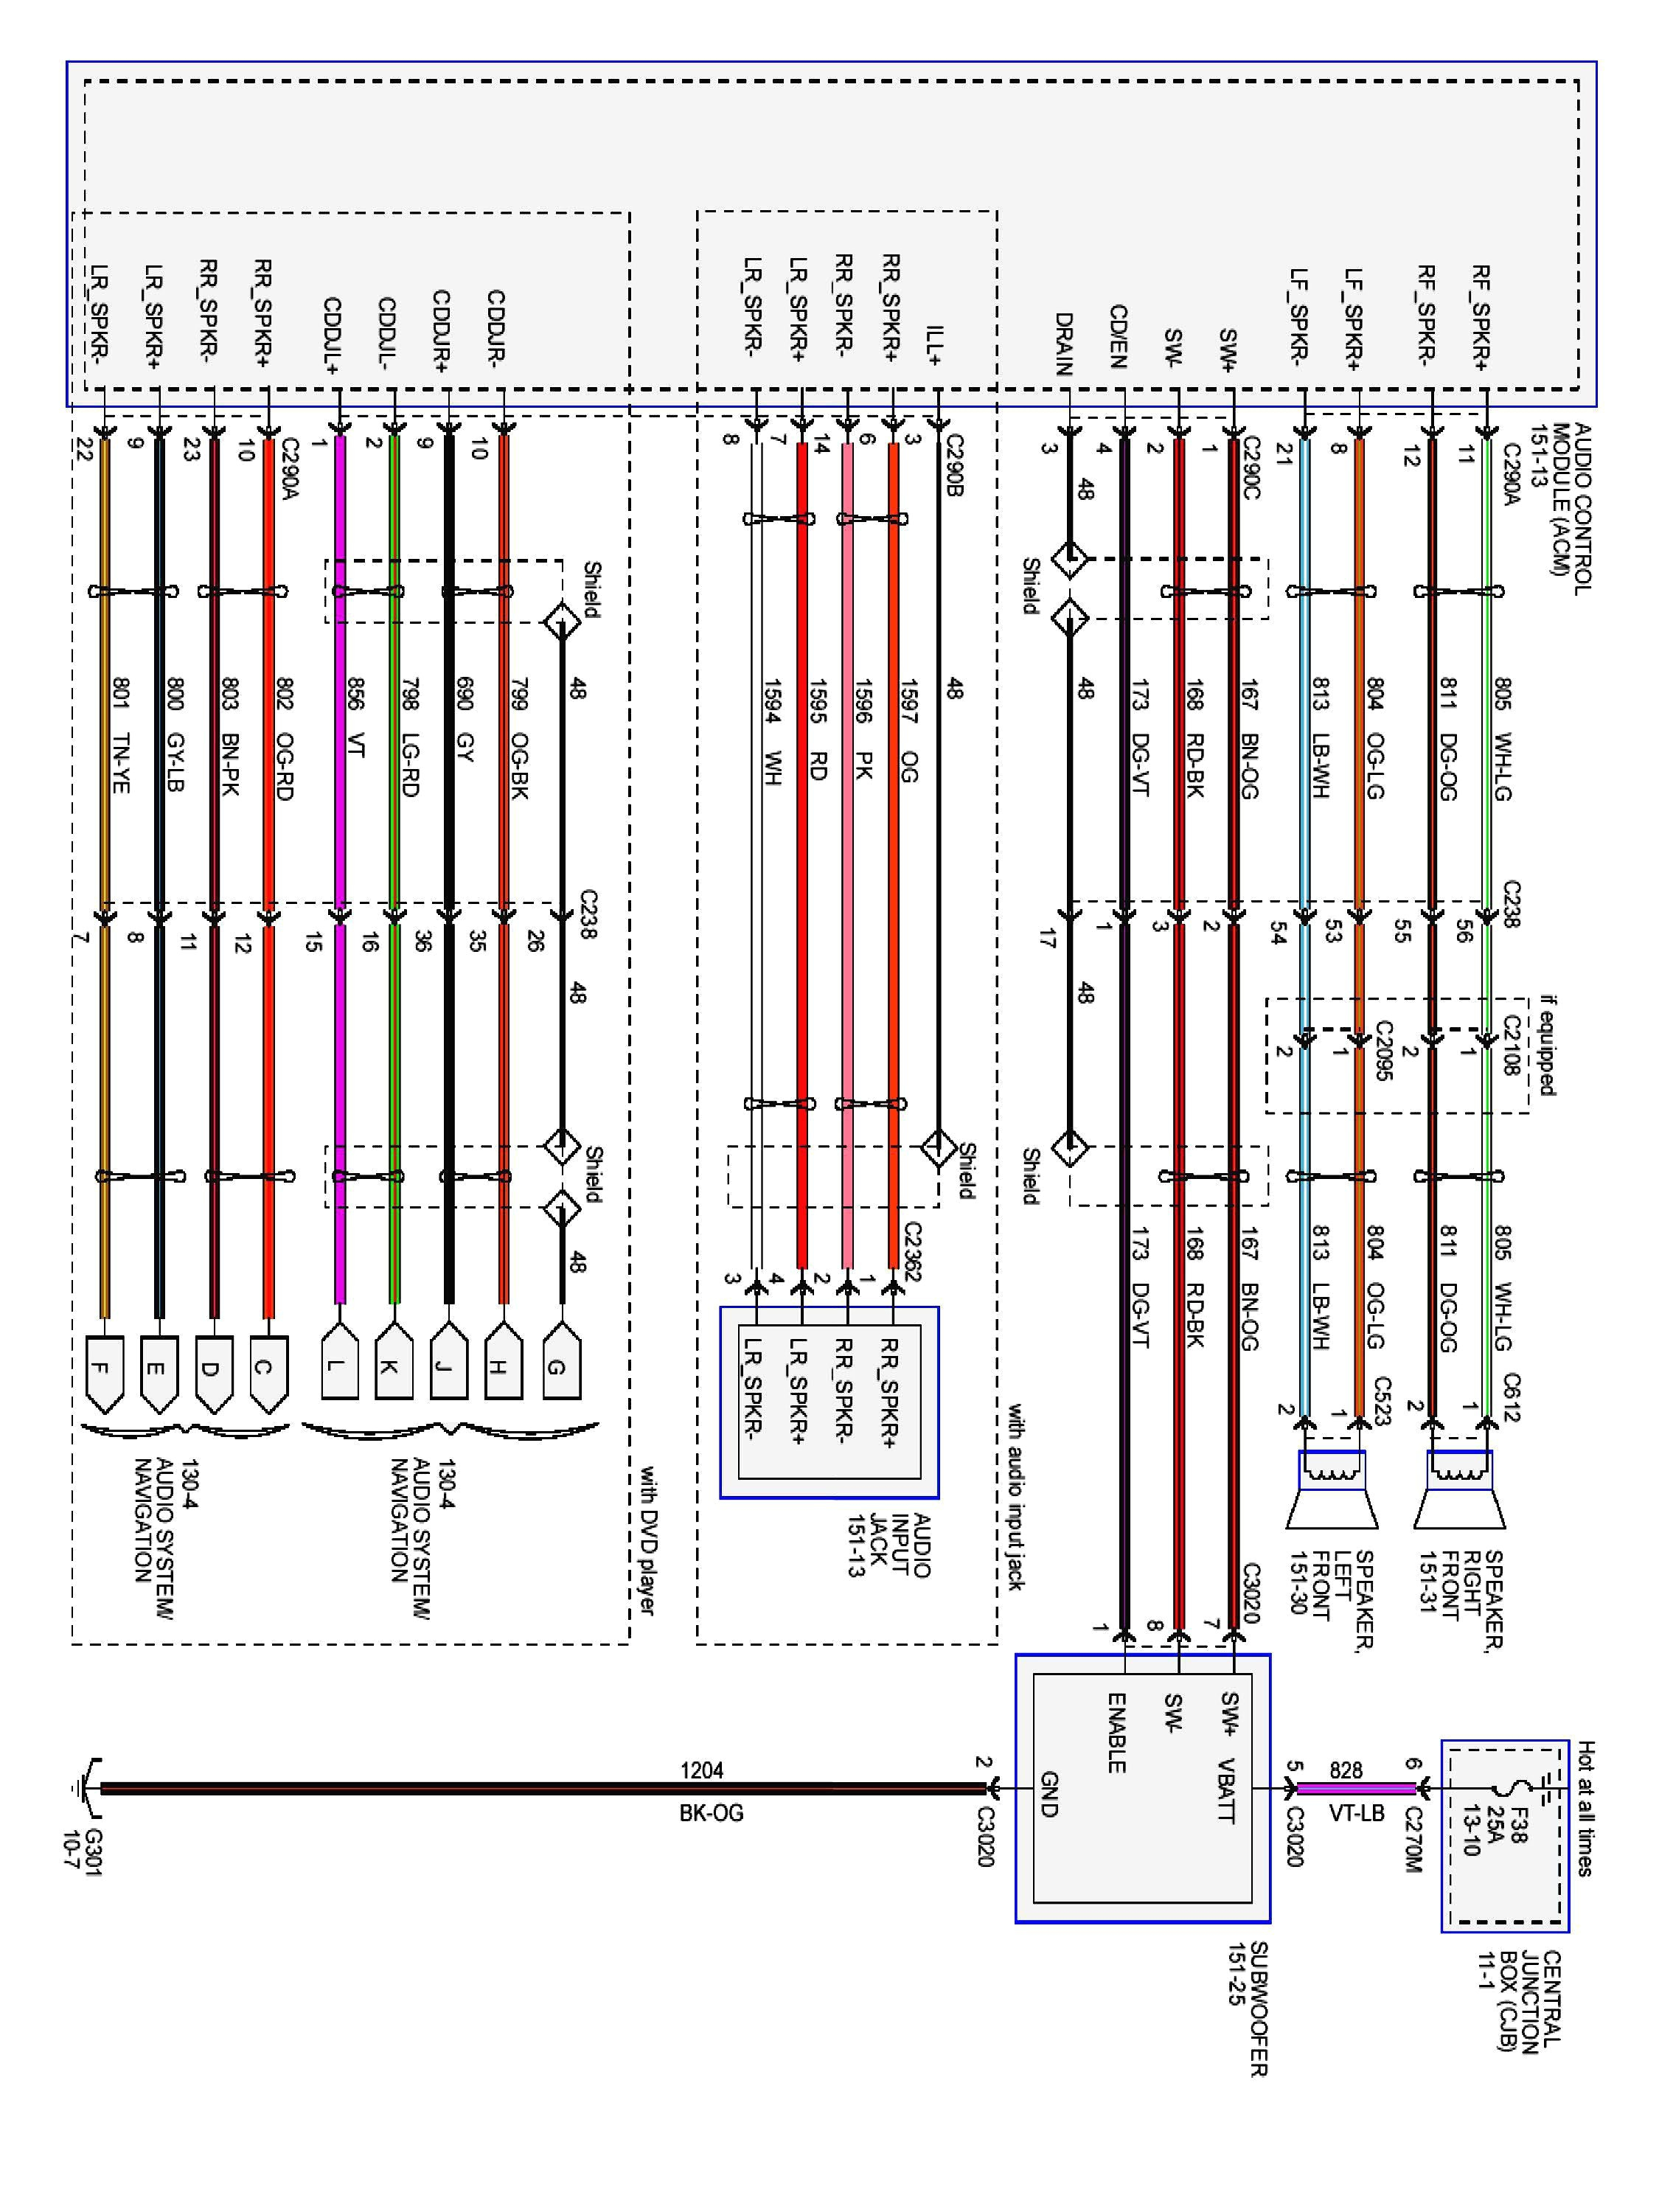 2004 Ford F550 Wiring Diagram Library F350 Fuse Box 2000 Focus Headl Harness Rh Vehiclewiring Today 2003 02